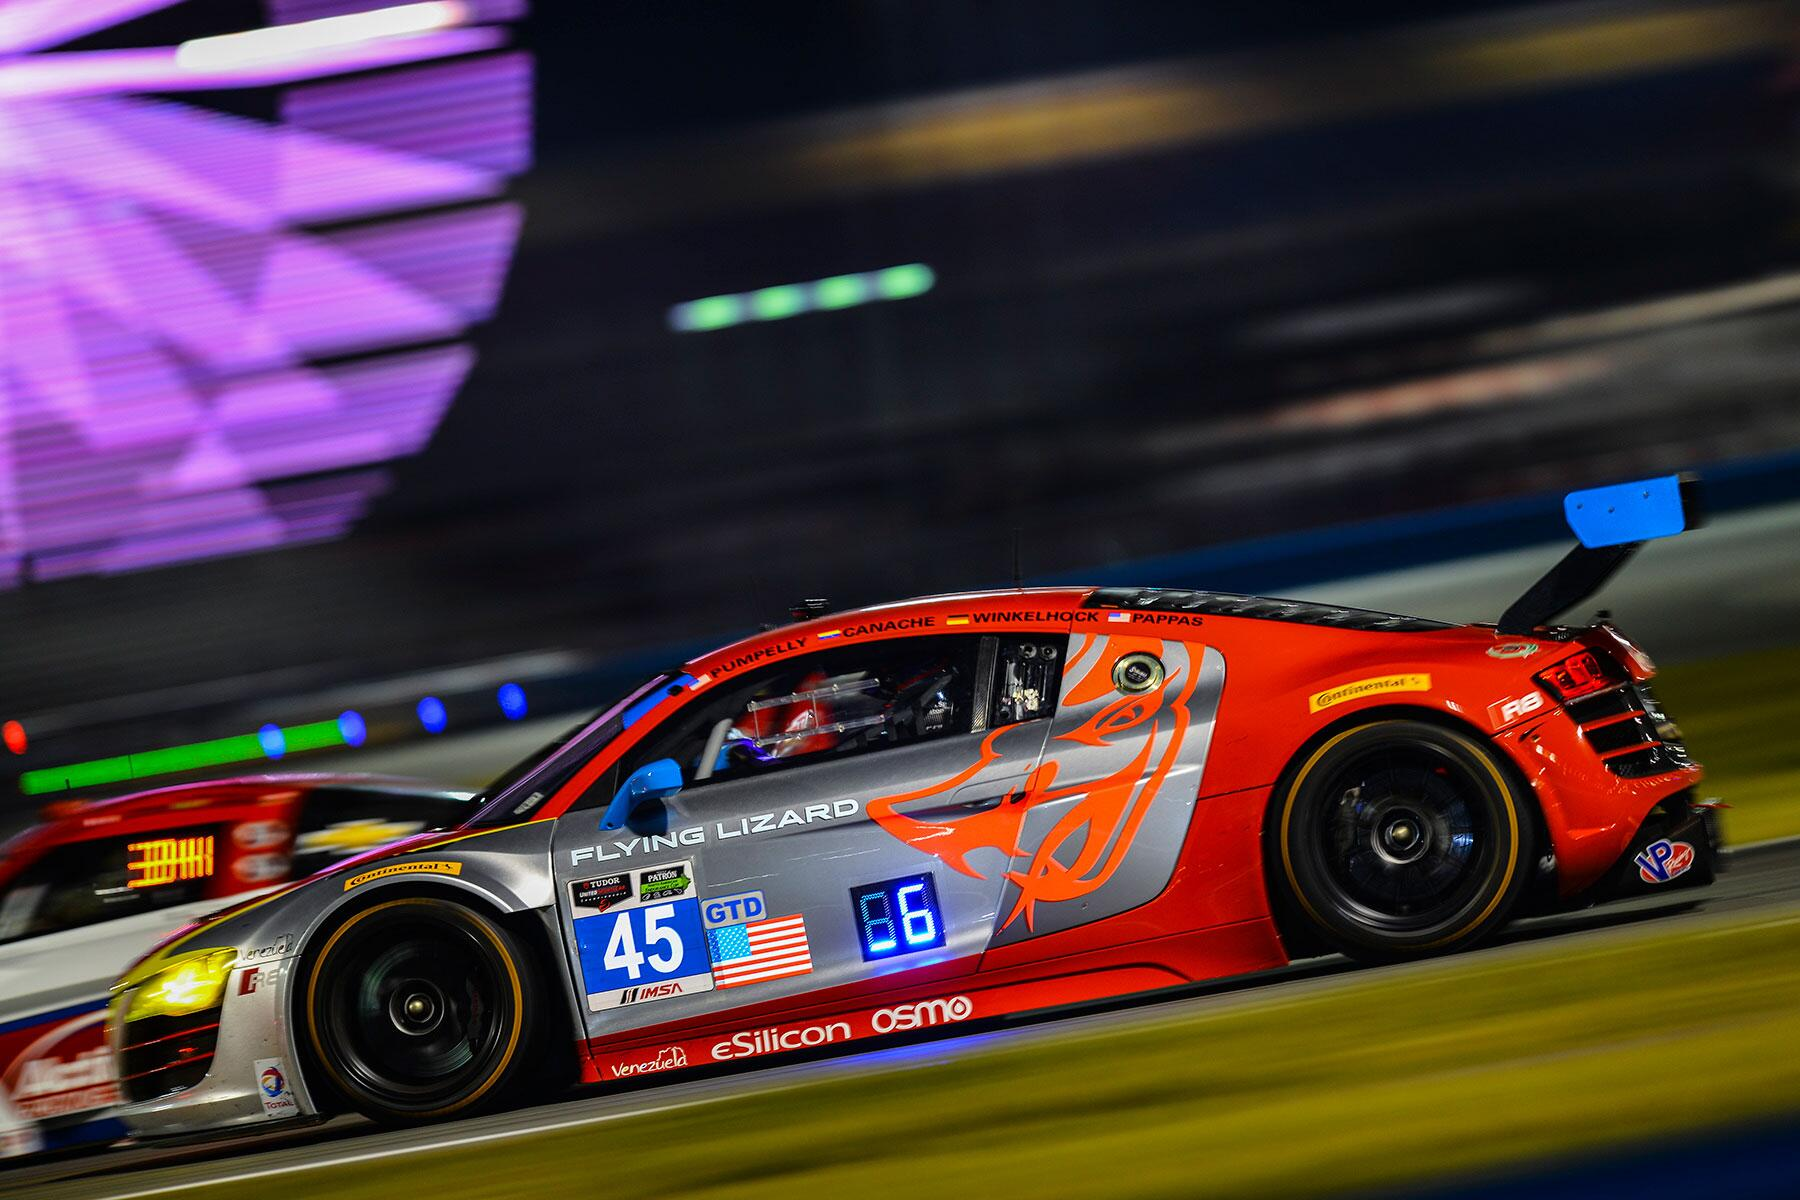 With five hours left at the #Rolex24 the No. 45 @FlyingLizard_MS #R8LMS is still in the hunt for the #GTD class win http://t.co/zhInOcBiKZ